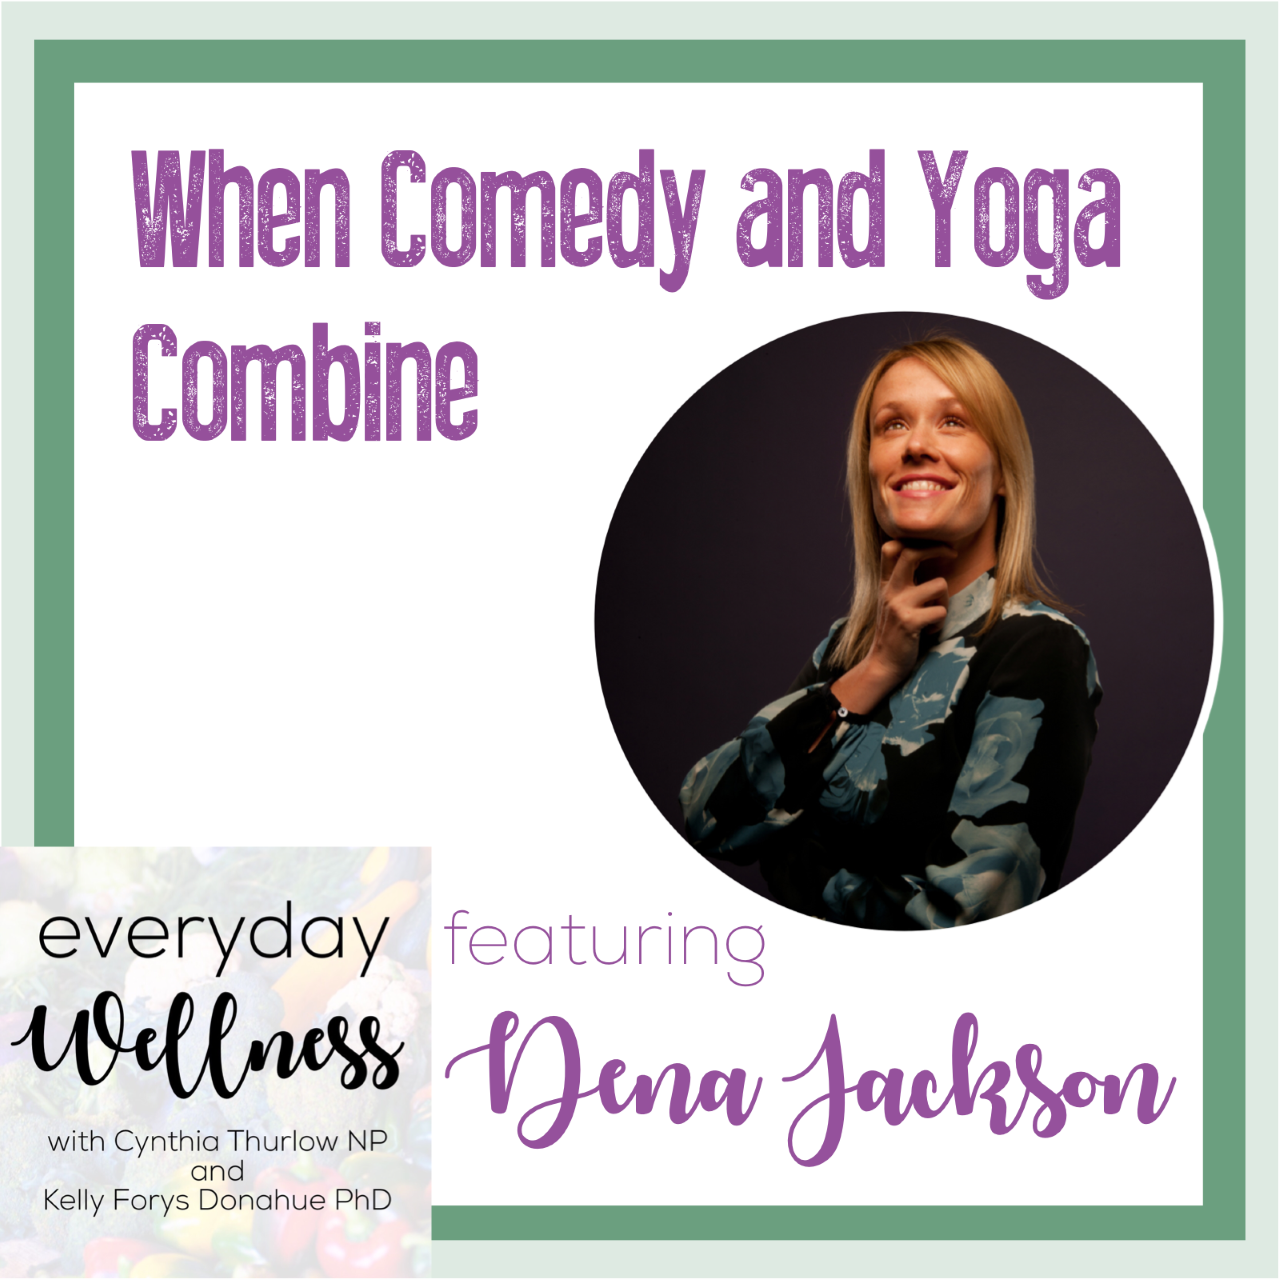 When Comedy and Yoga Combine by Dena Jackson